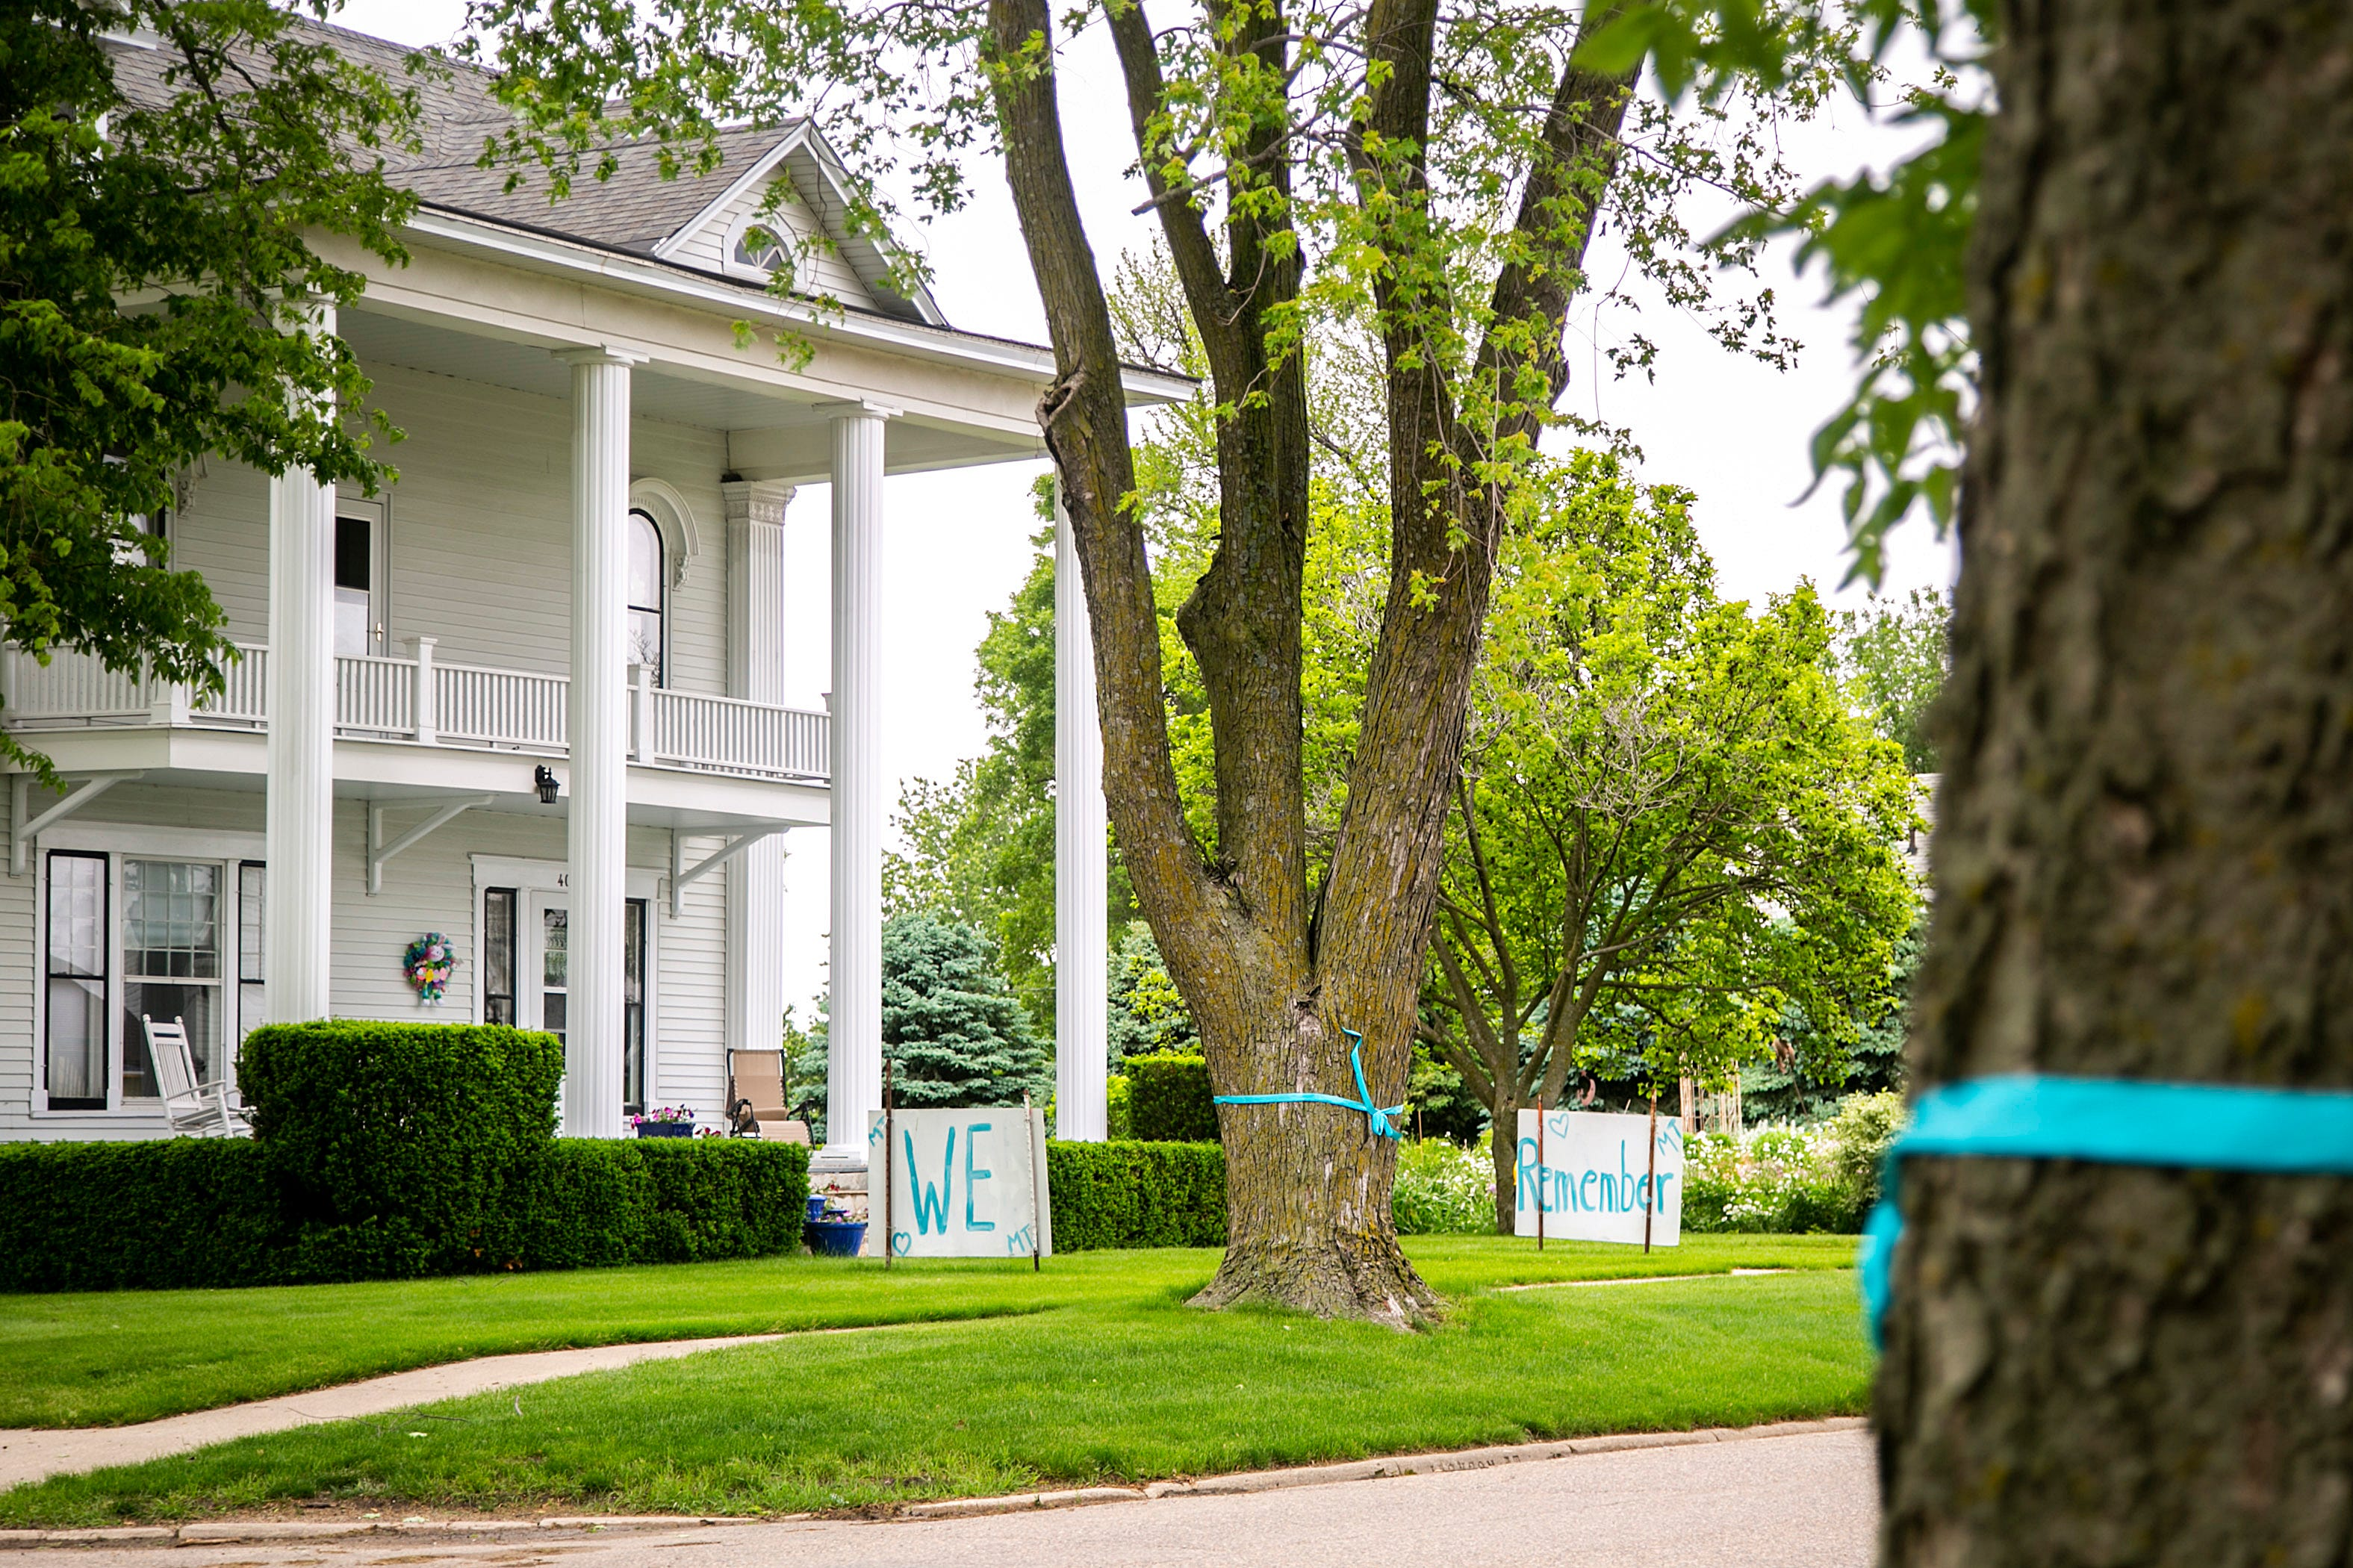 """Teal ribbons, in honor of Mollie Tibbetts, are attached to trees along Jackson Street in front of a house with signs reading """"We remember,"""" Friday, May 28, 2021, in Brooklyn, Iowa."""